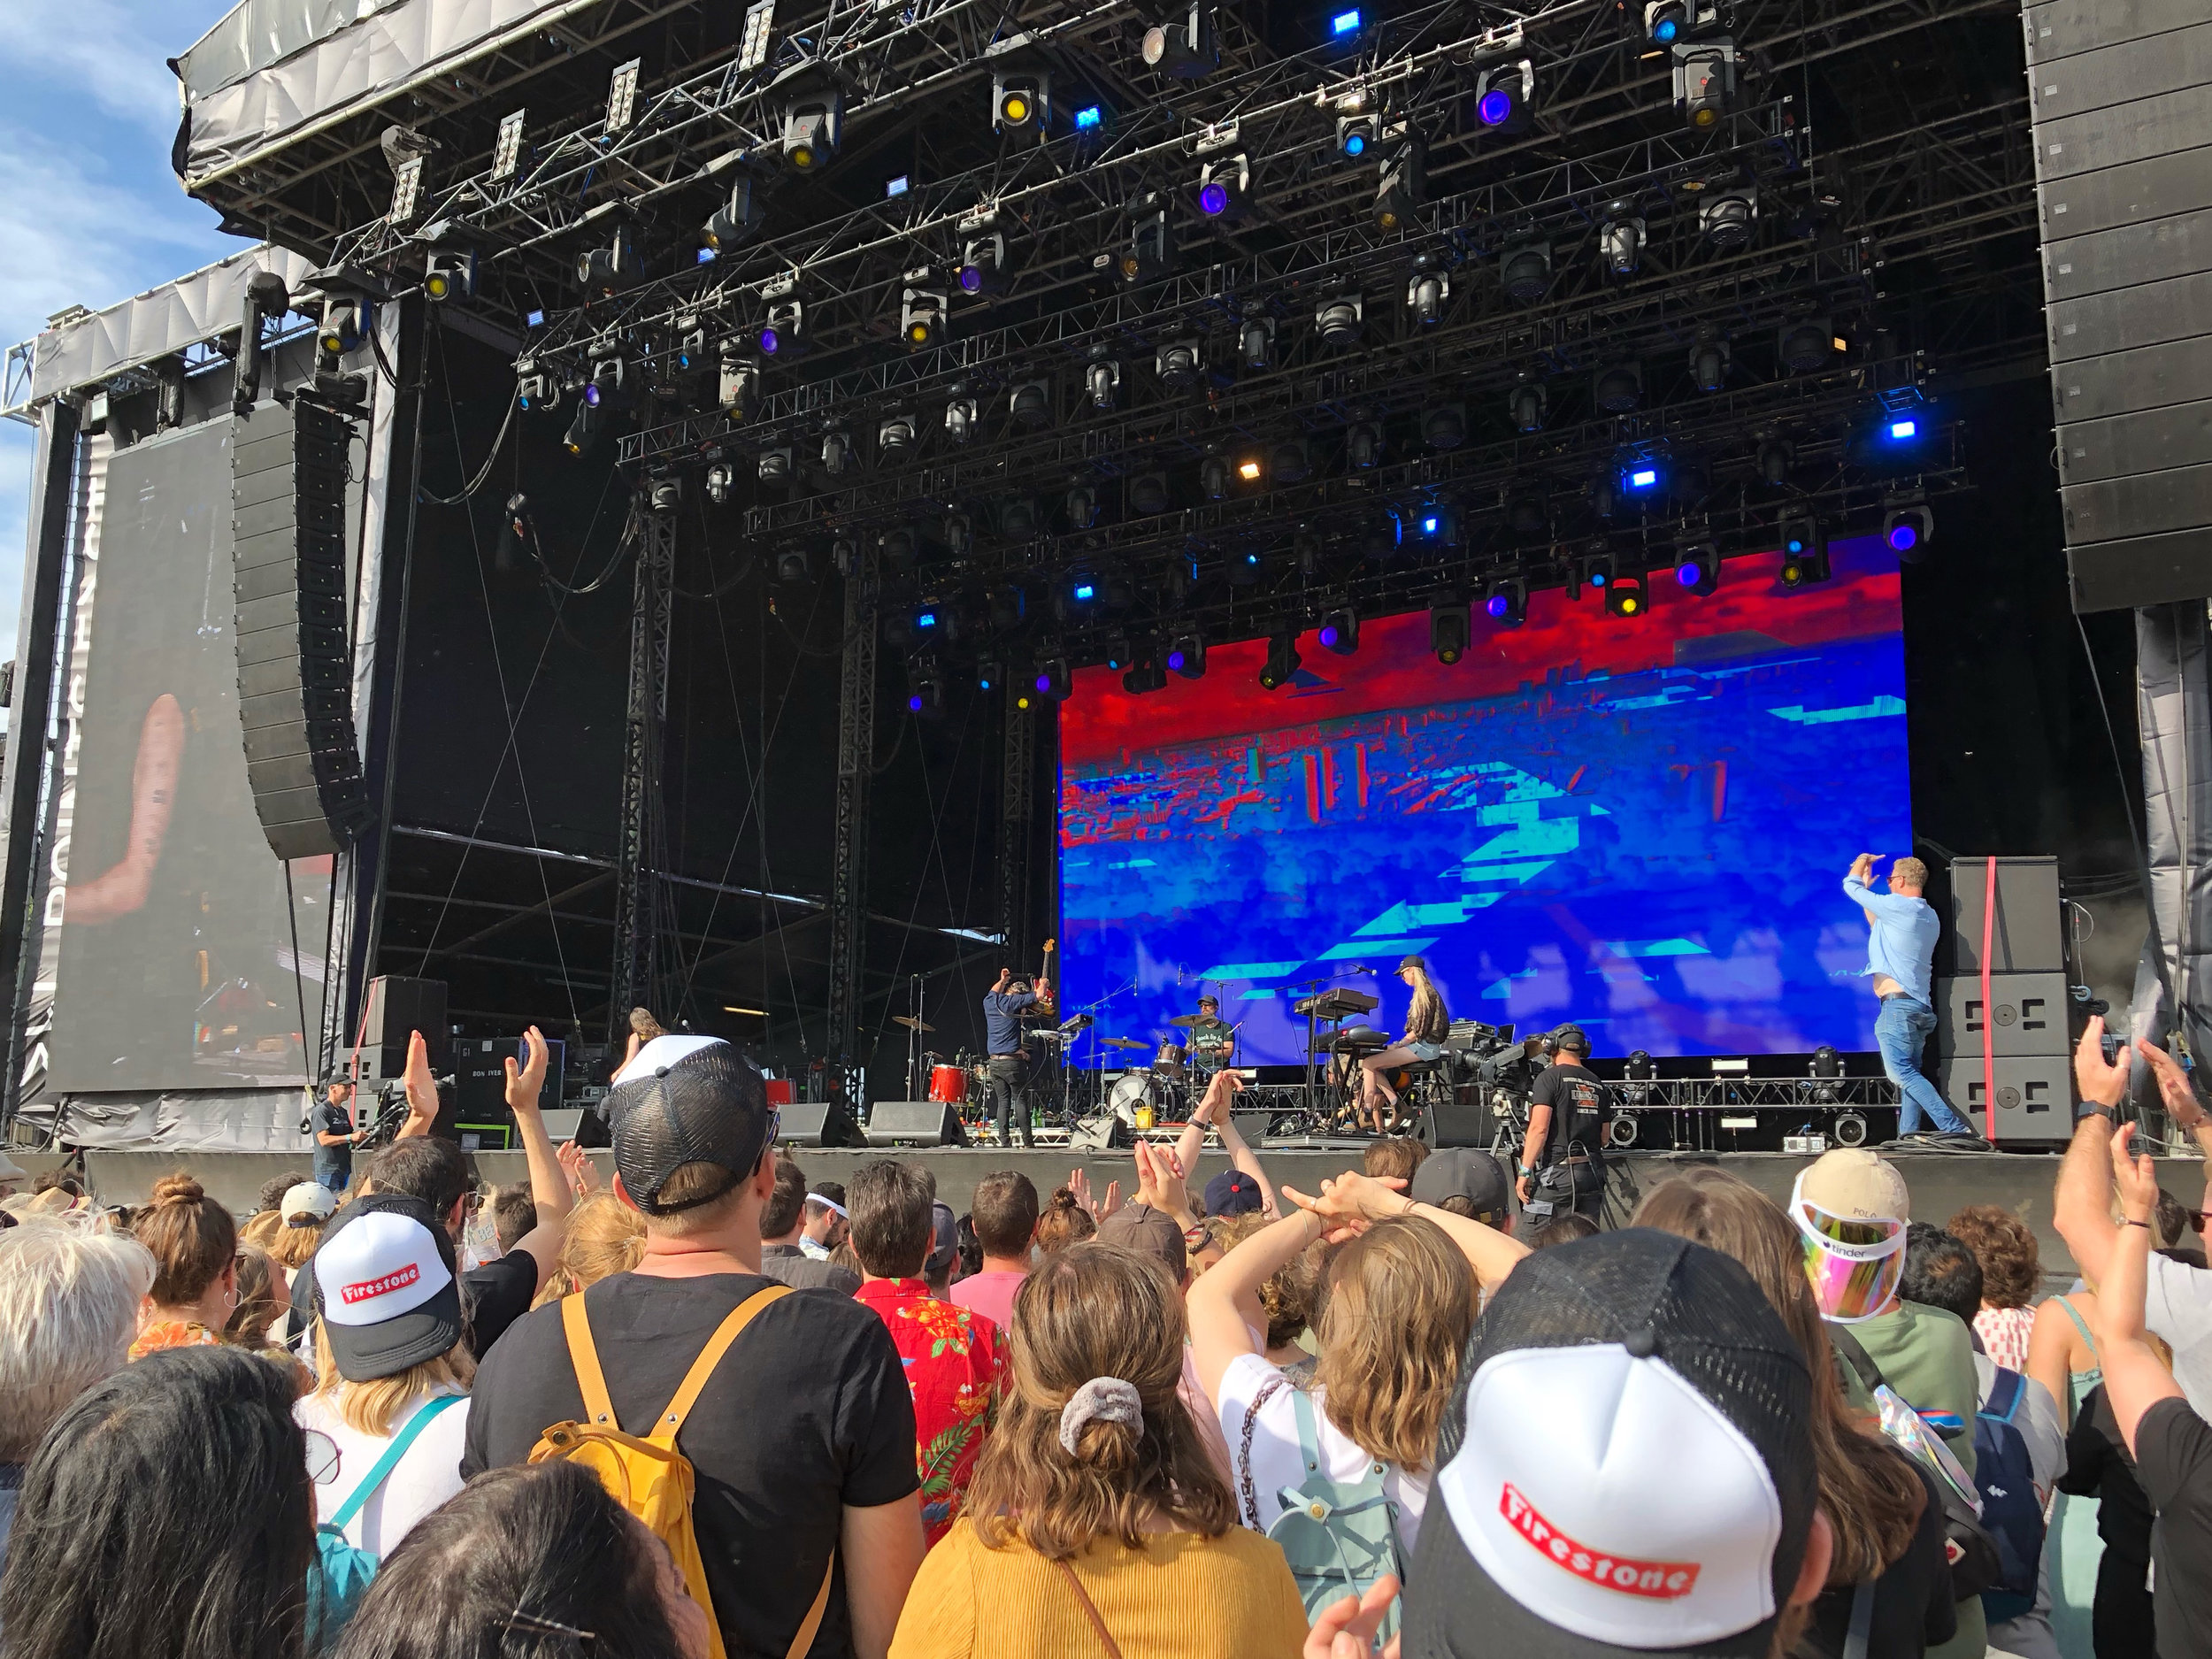 Time's up, time's up. Phosphorescent getting the call to cut it (as seen on the right) for their reshuffled set time on the main East stage at All Points East 2019